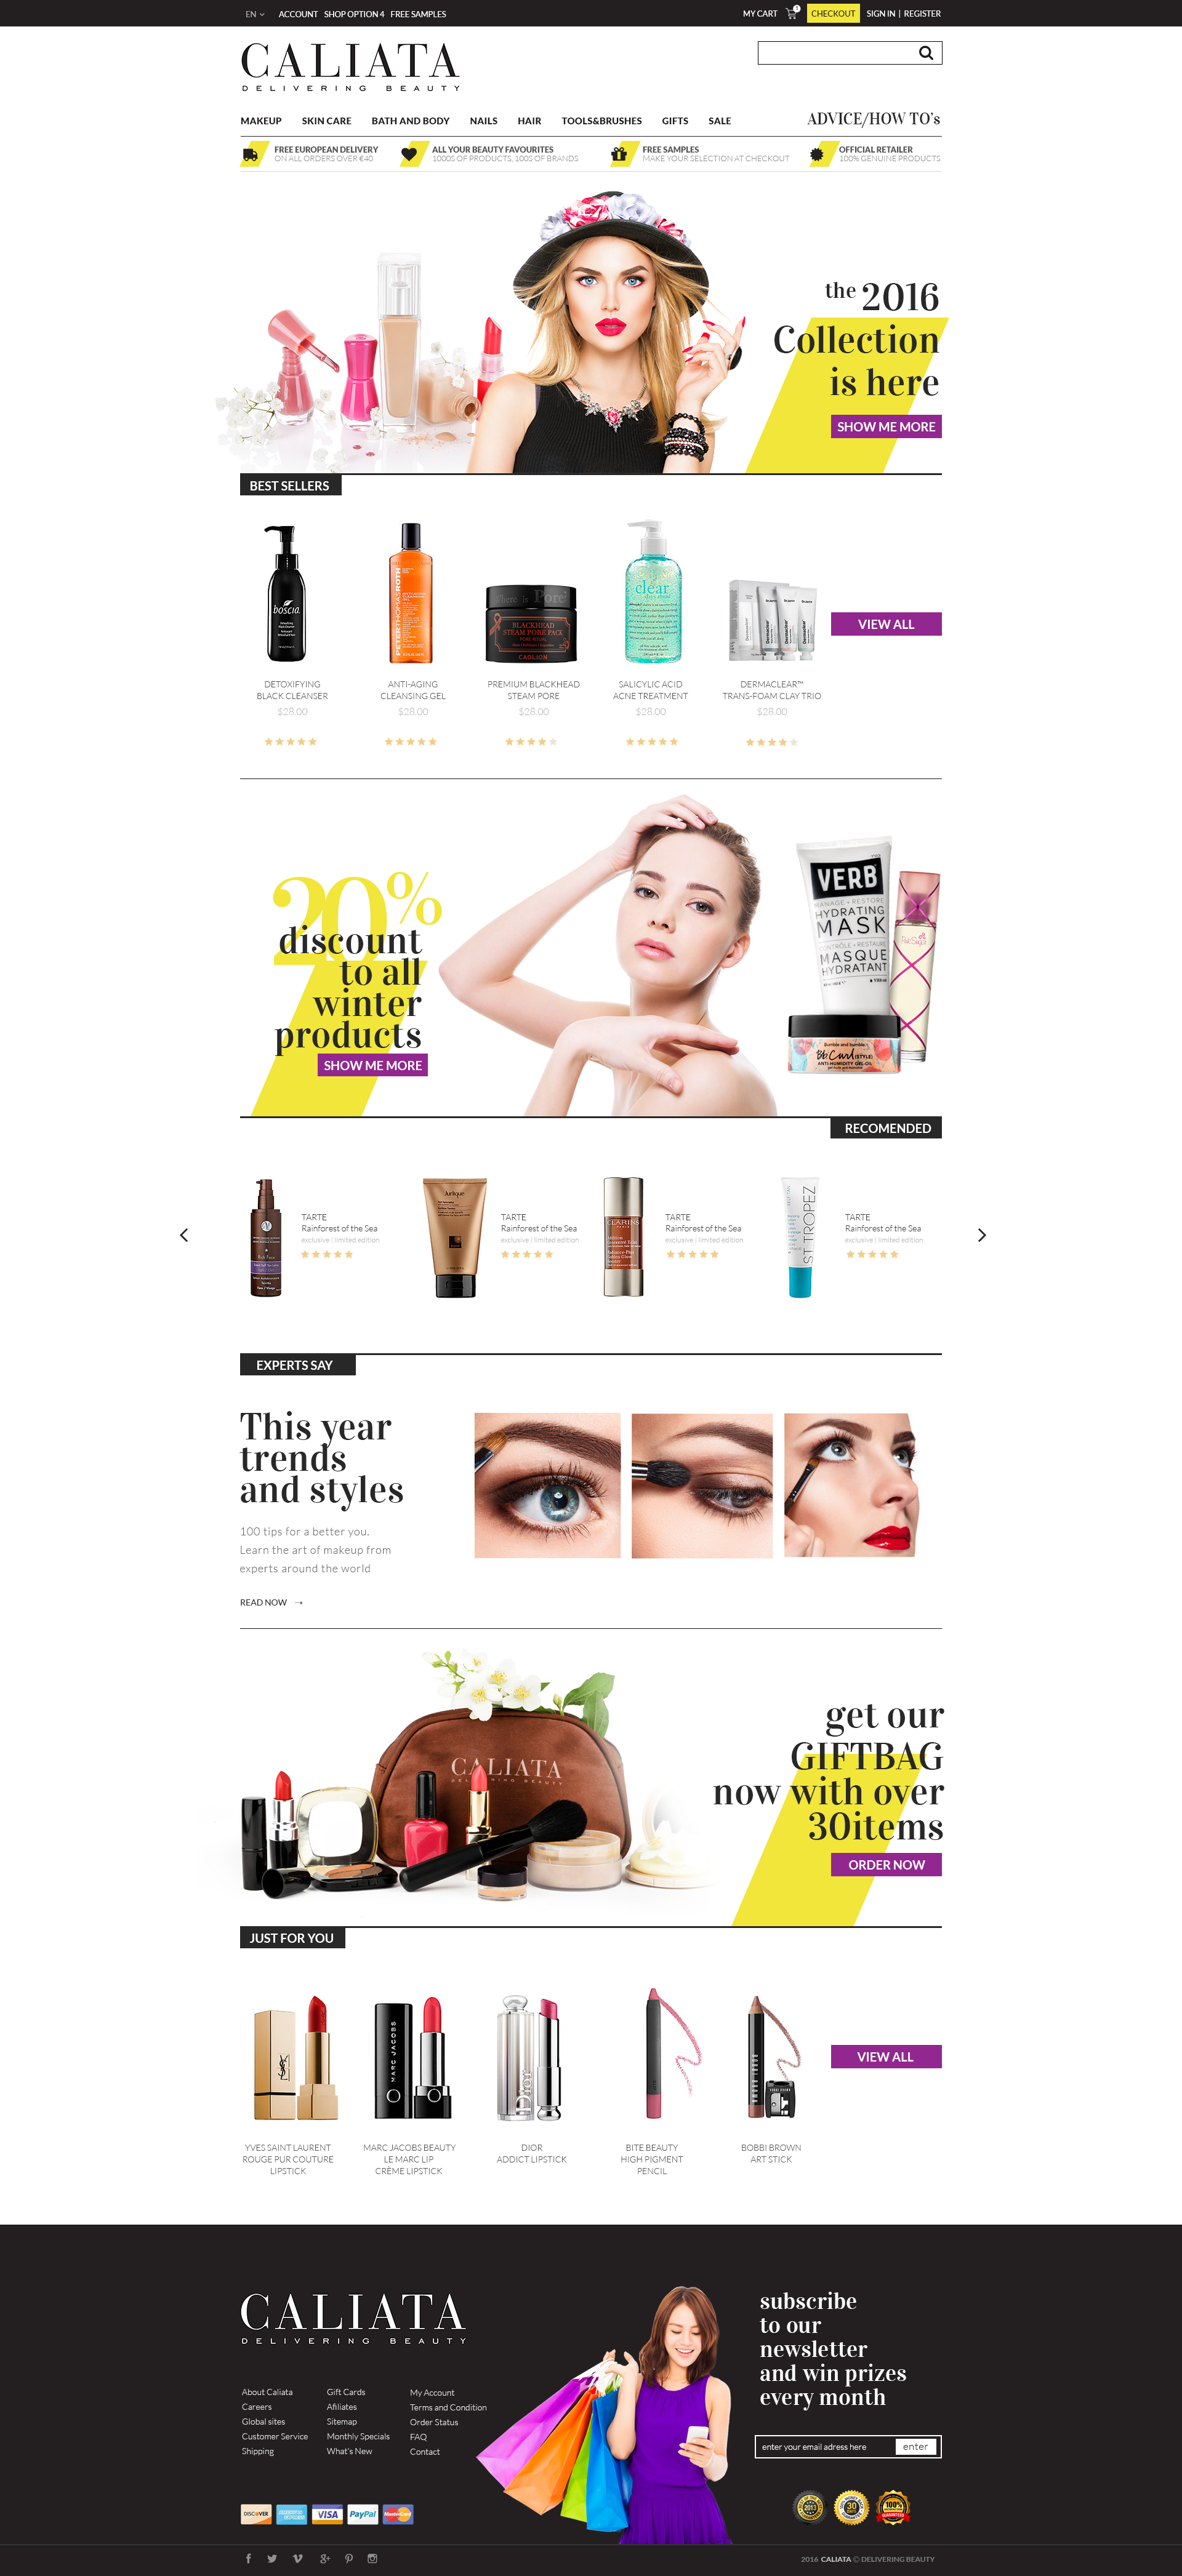 Design of an e-commerce site selling beauty products